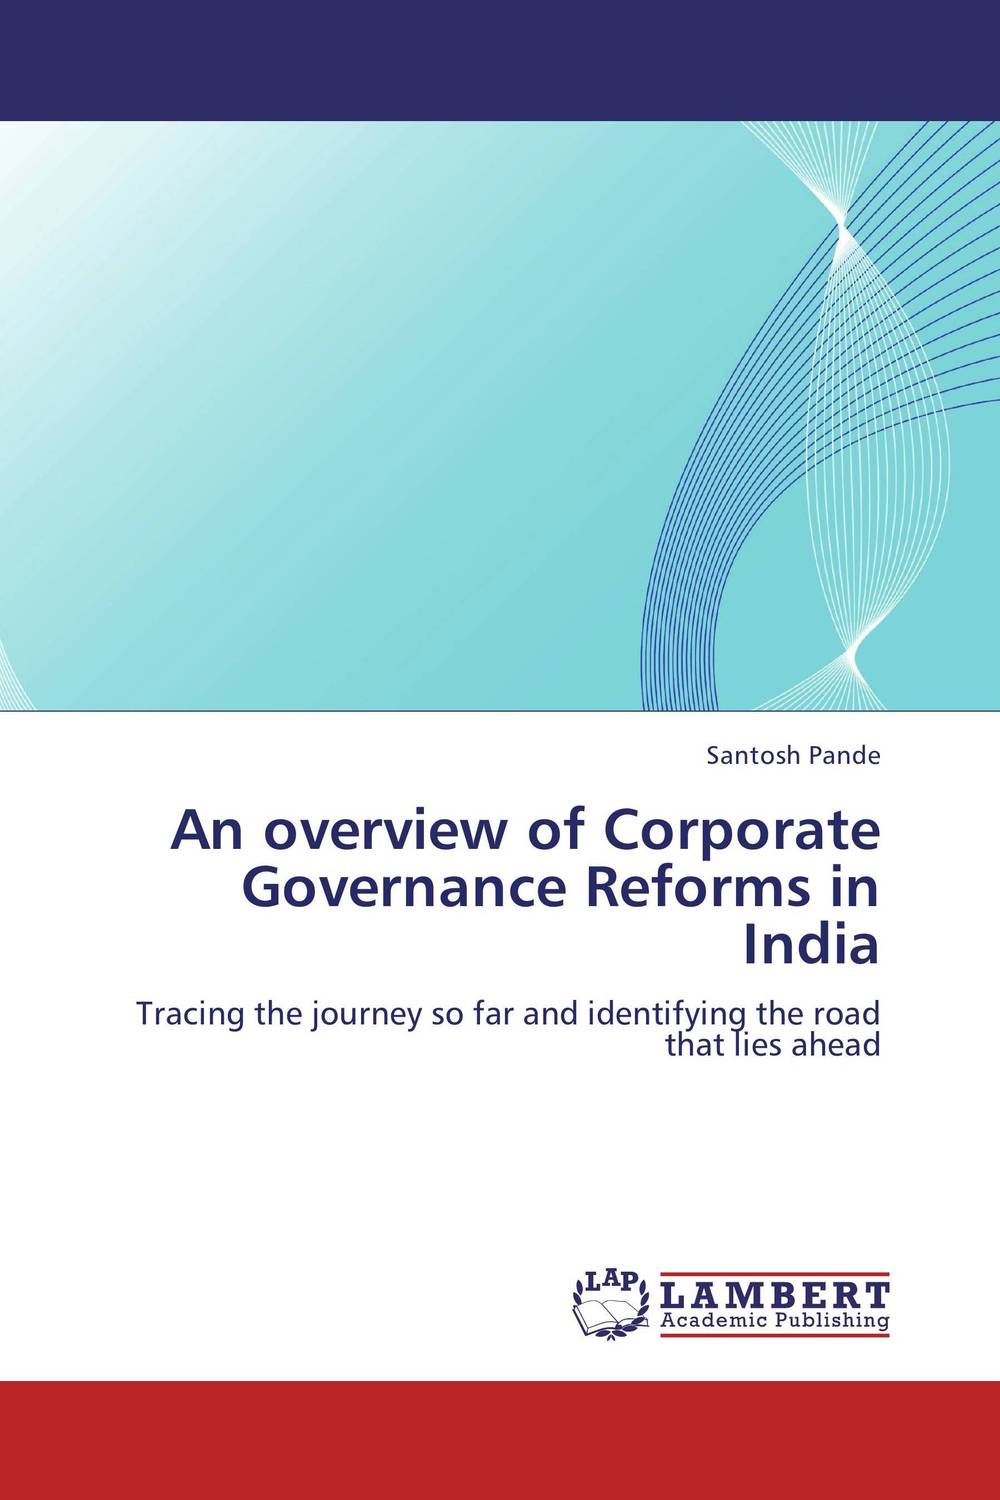 An overview of Corporate Governance Reforms in India